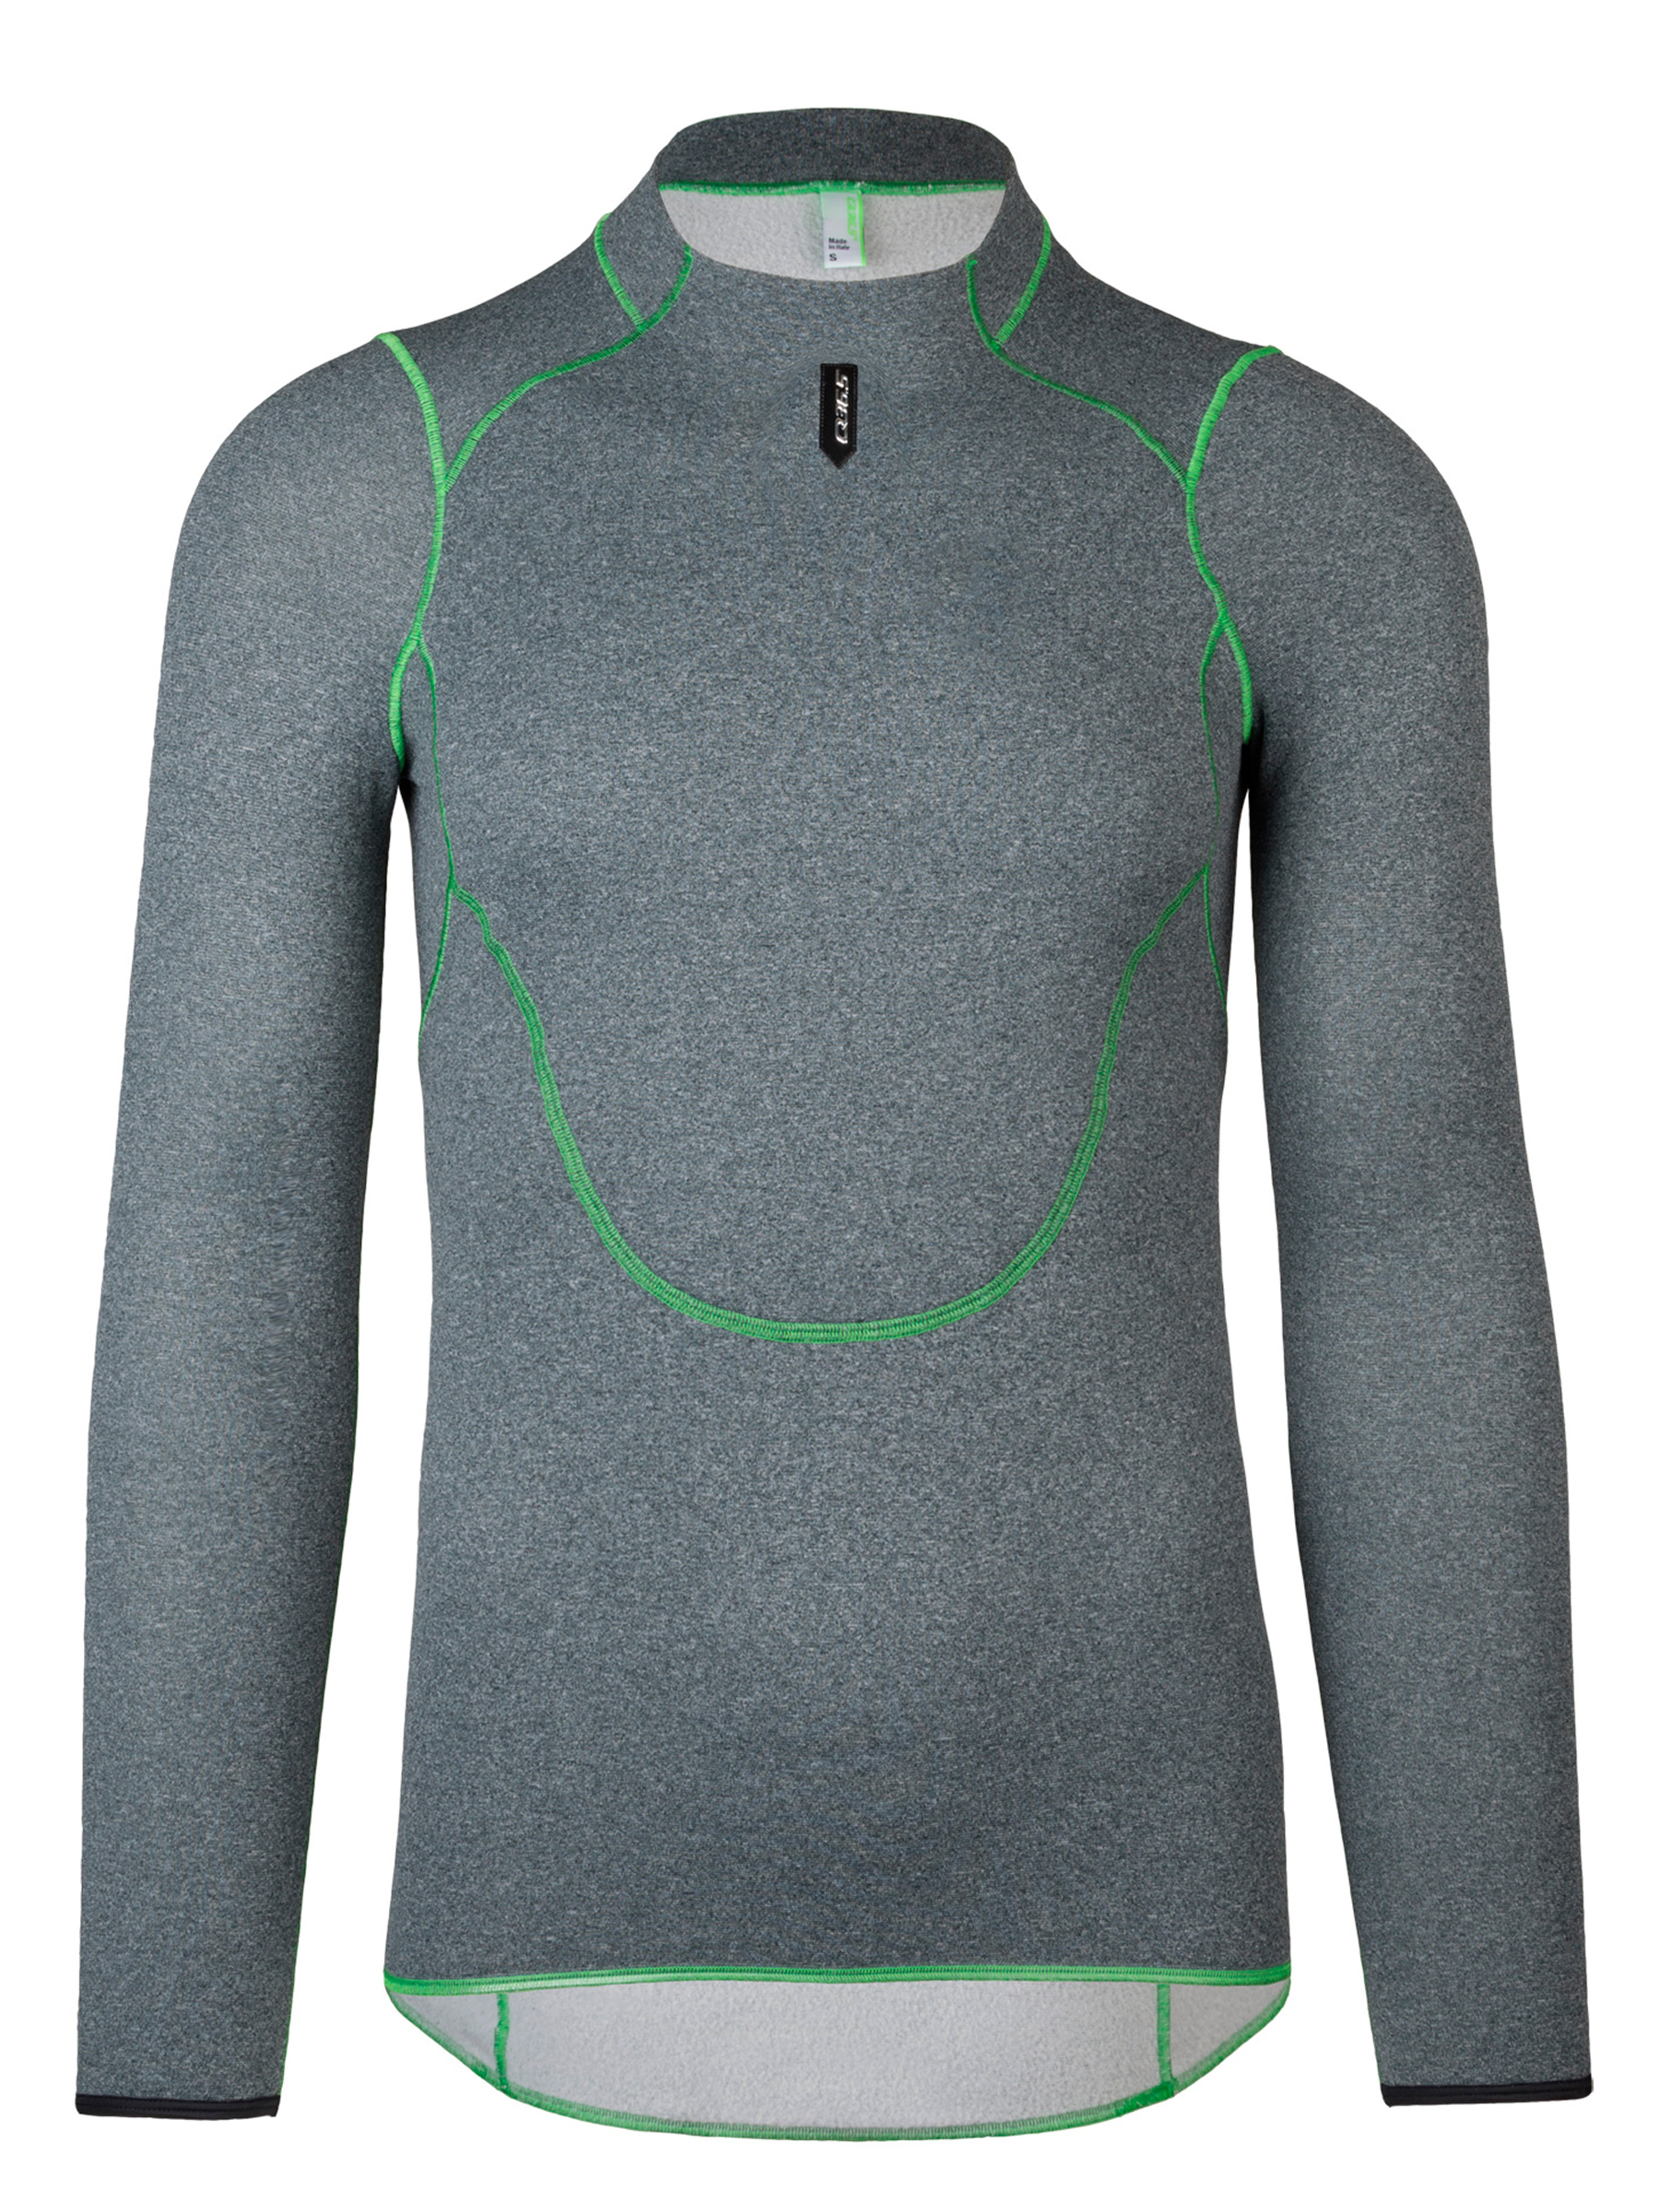 Cycling Base Layer Intimo longsleeve Teddy Berry Q36.5